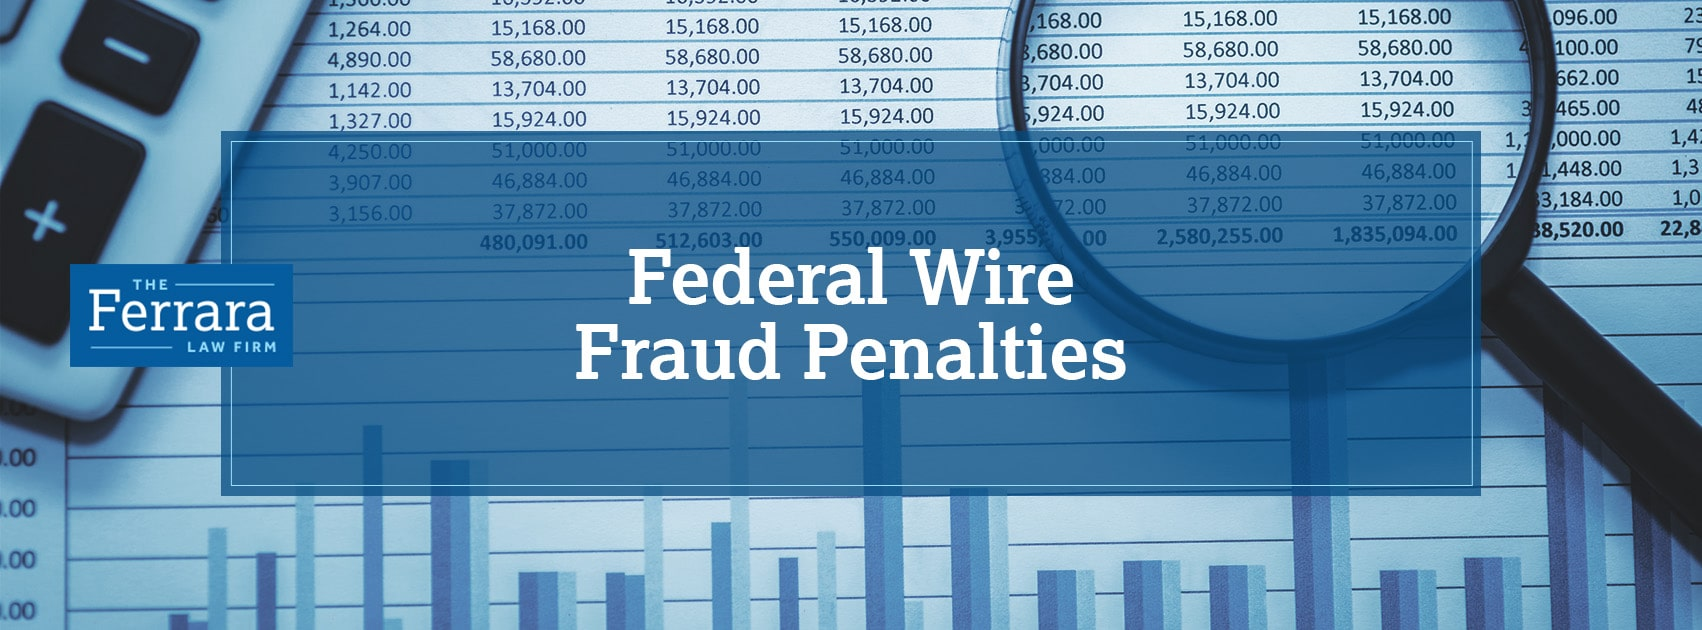 Federal Wire Fraud Penalties - WIRING CENTER •